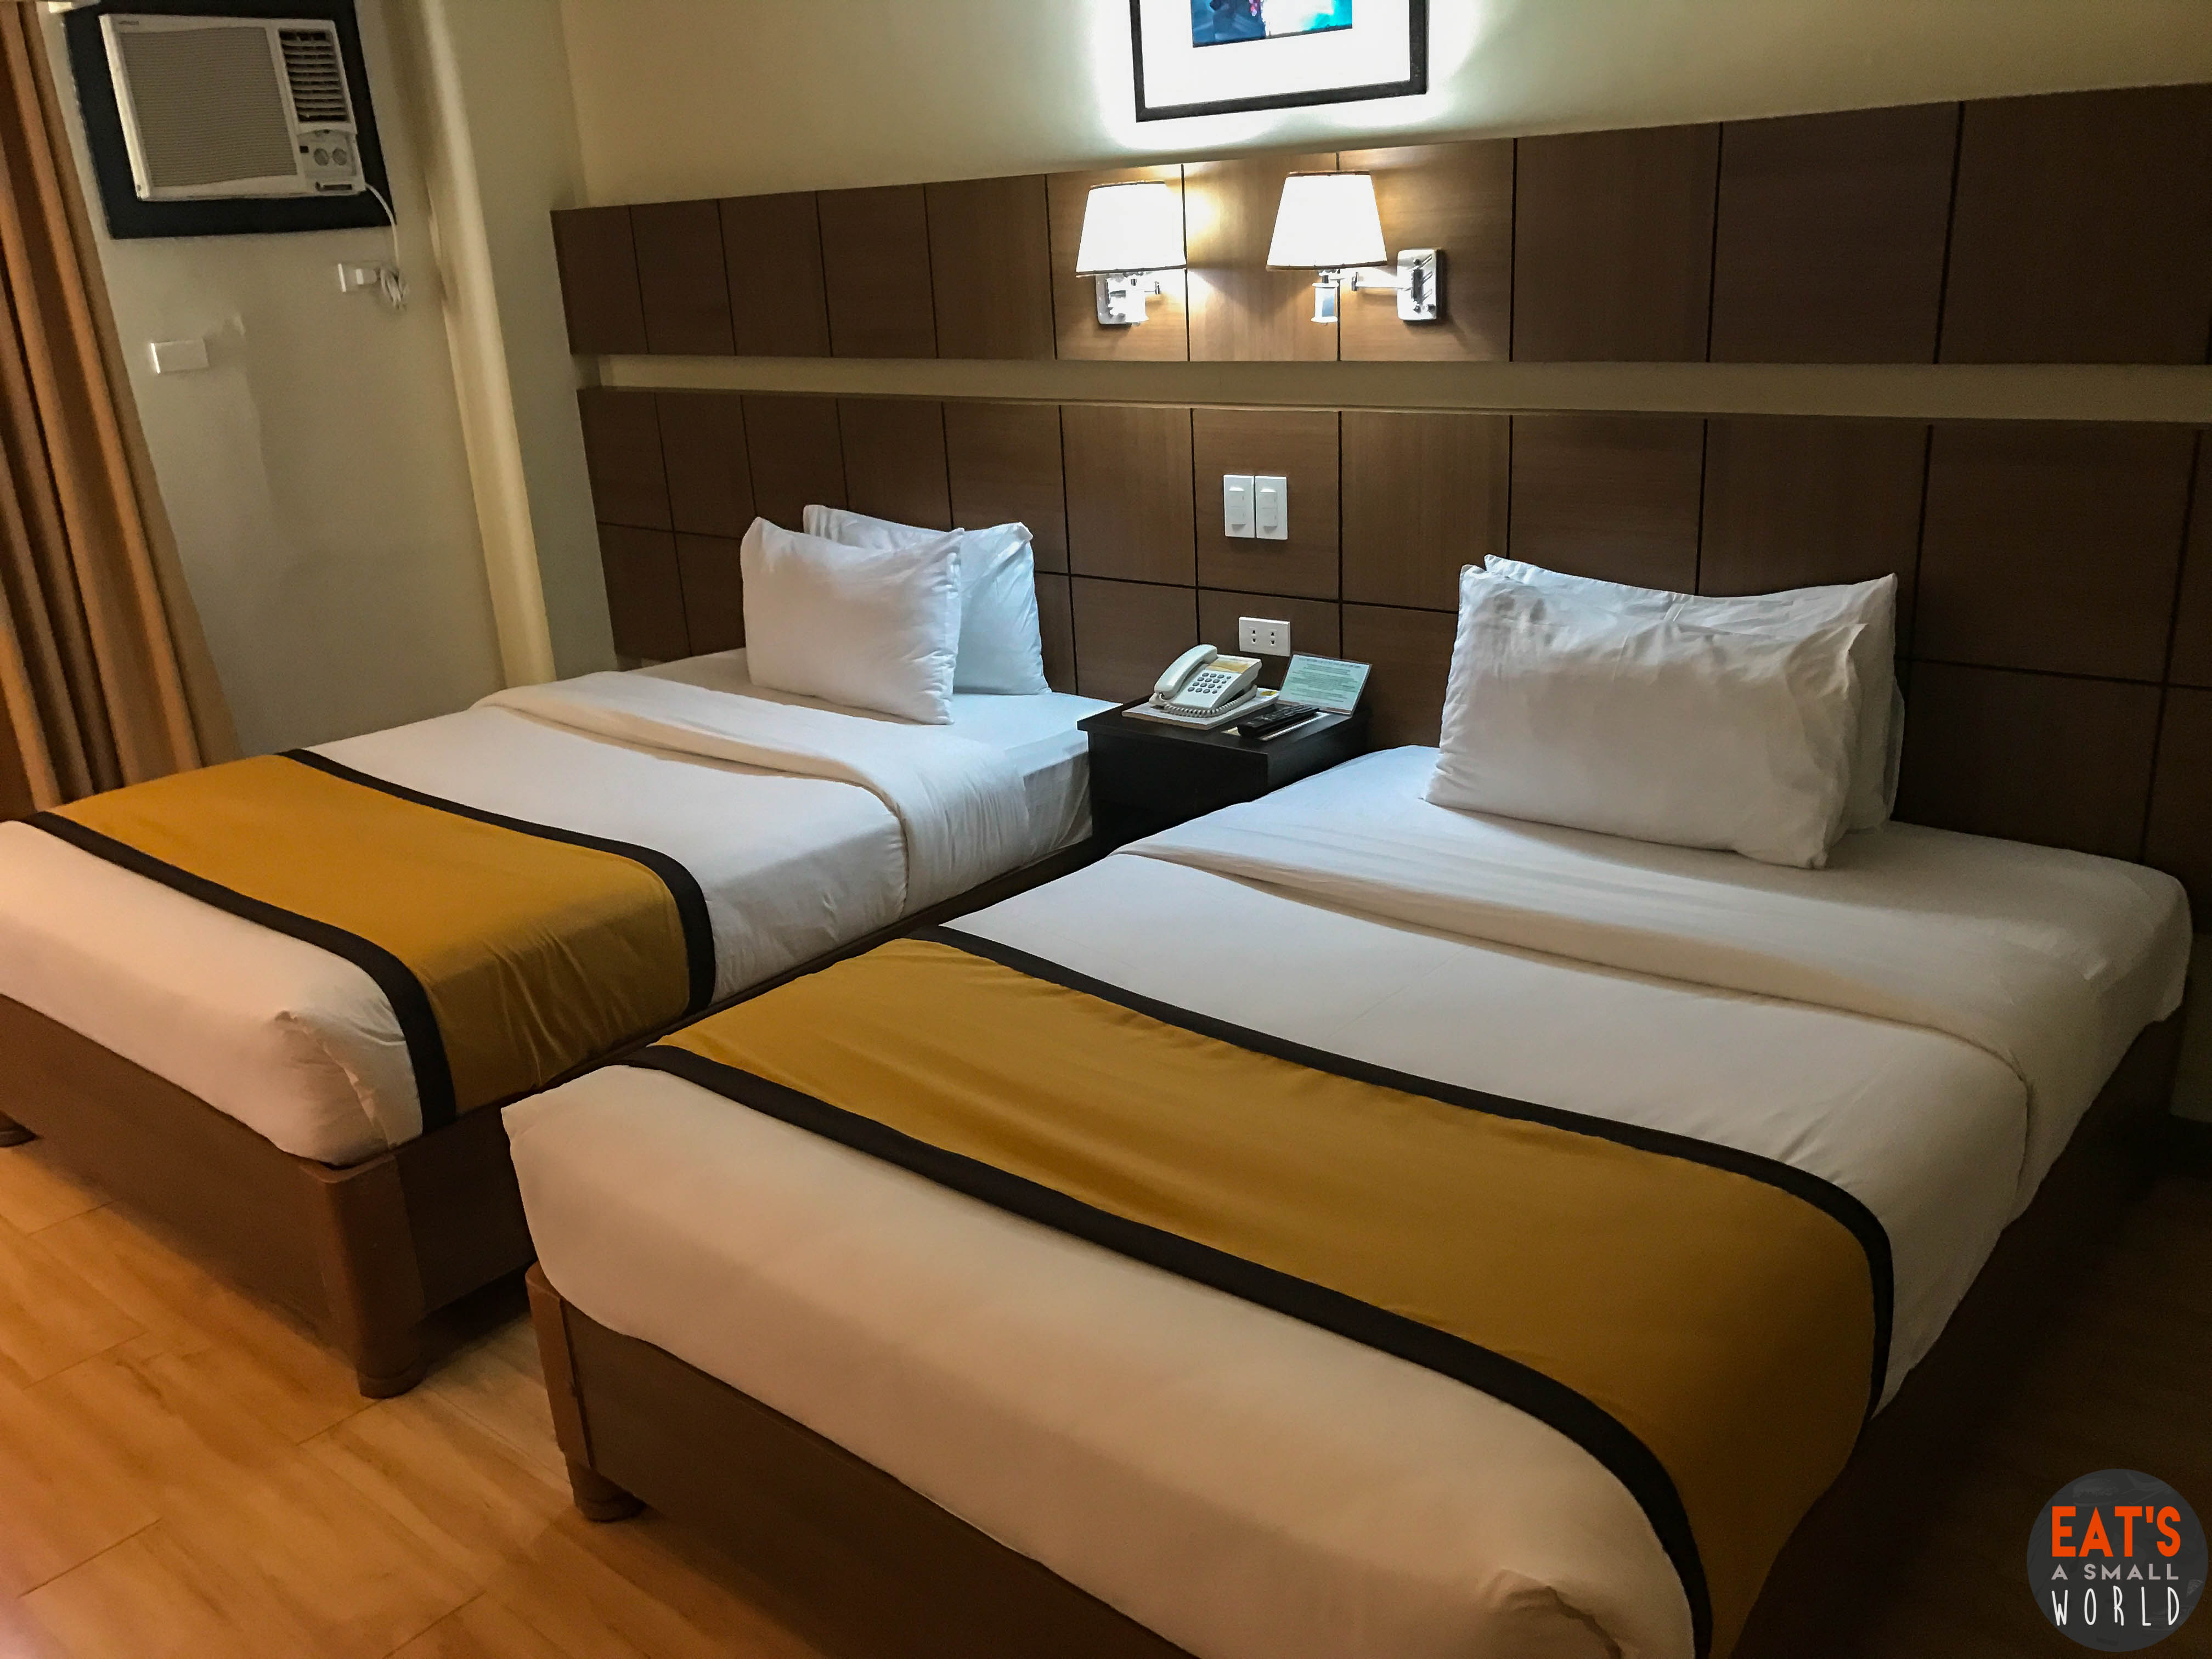 Pinnacle Hotel in Davao: A Good Stay